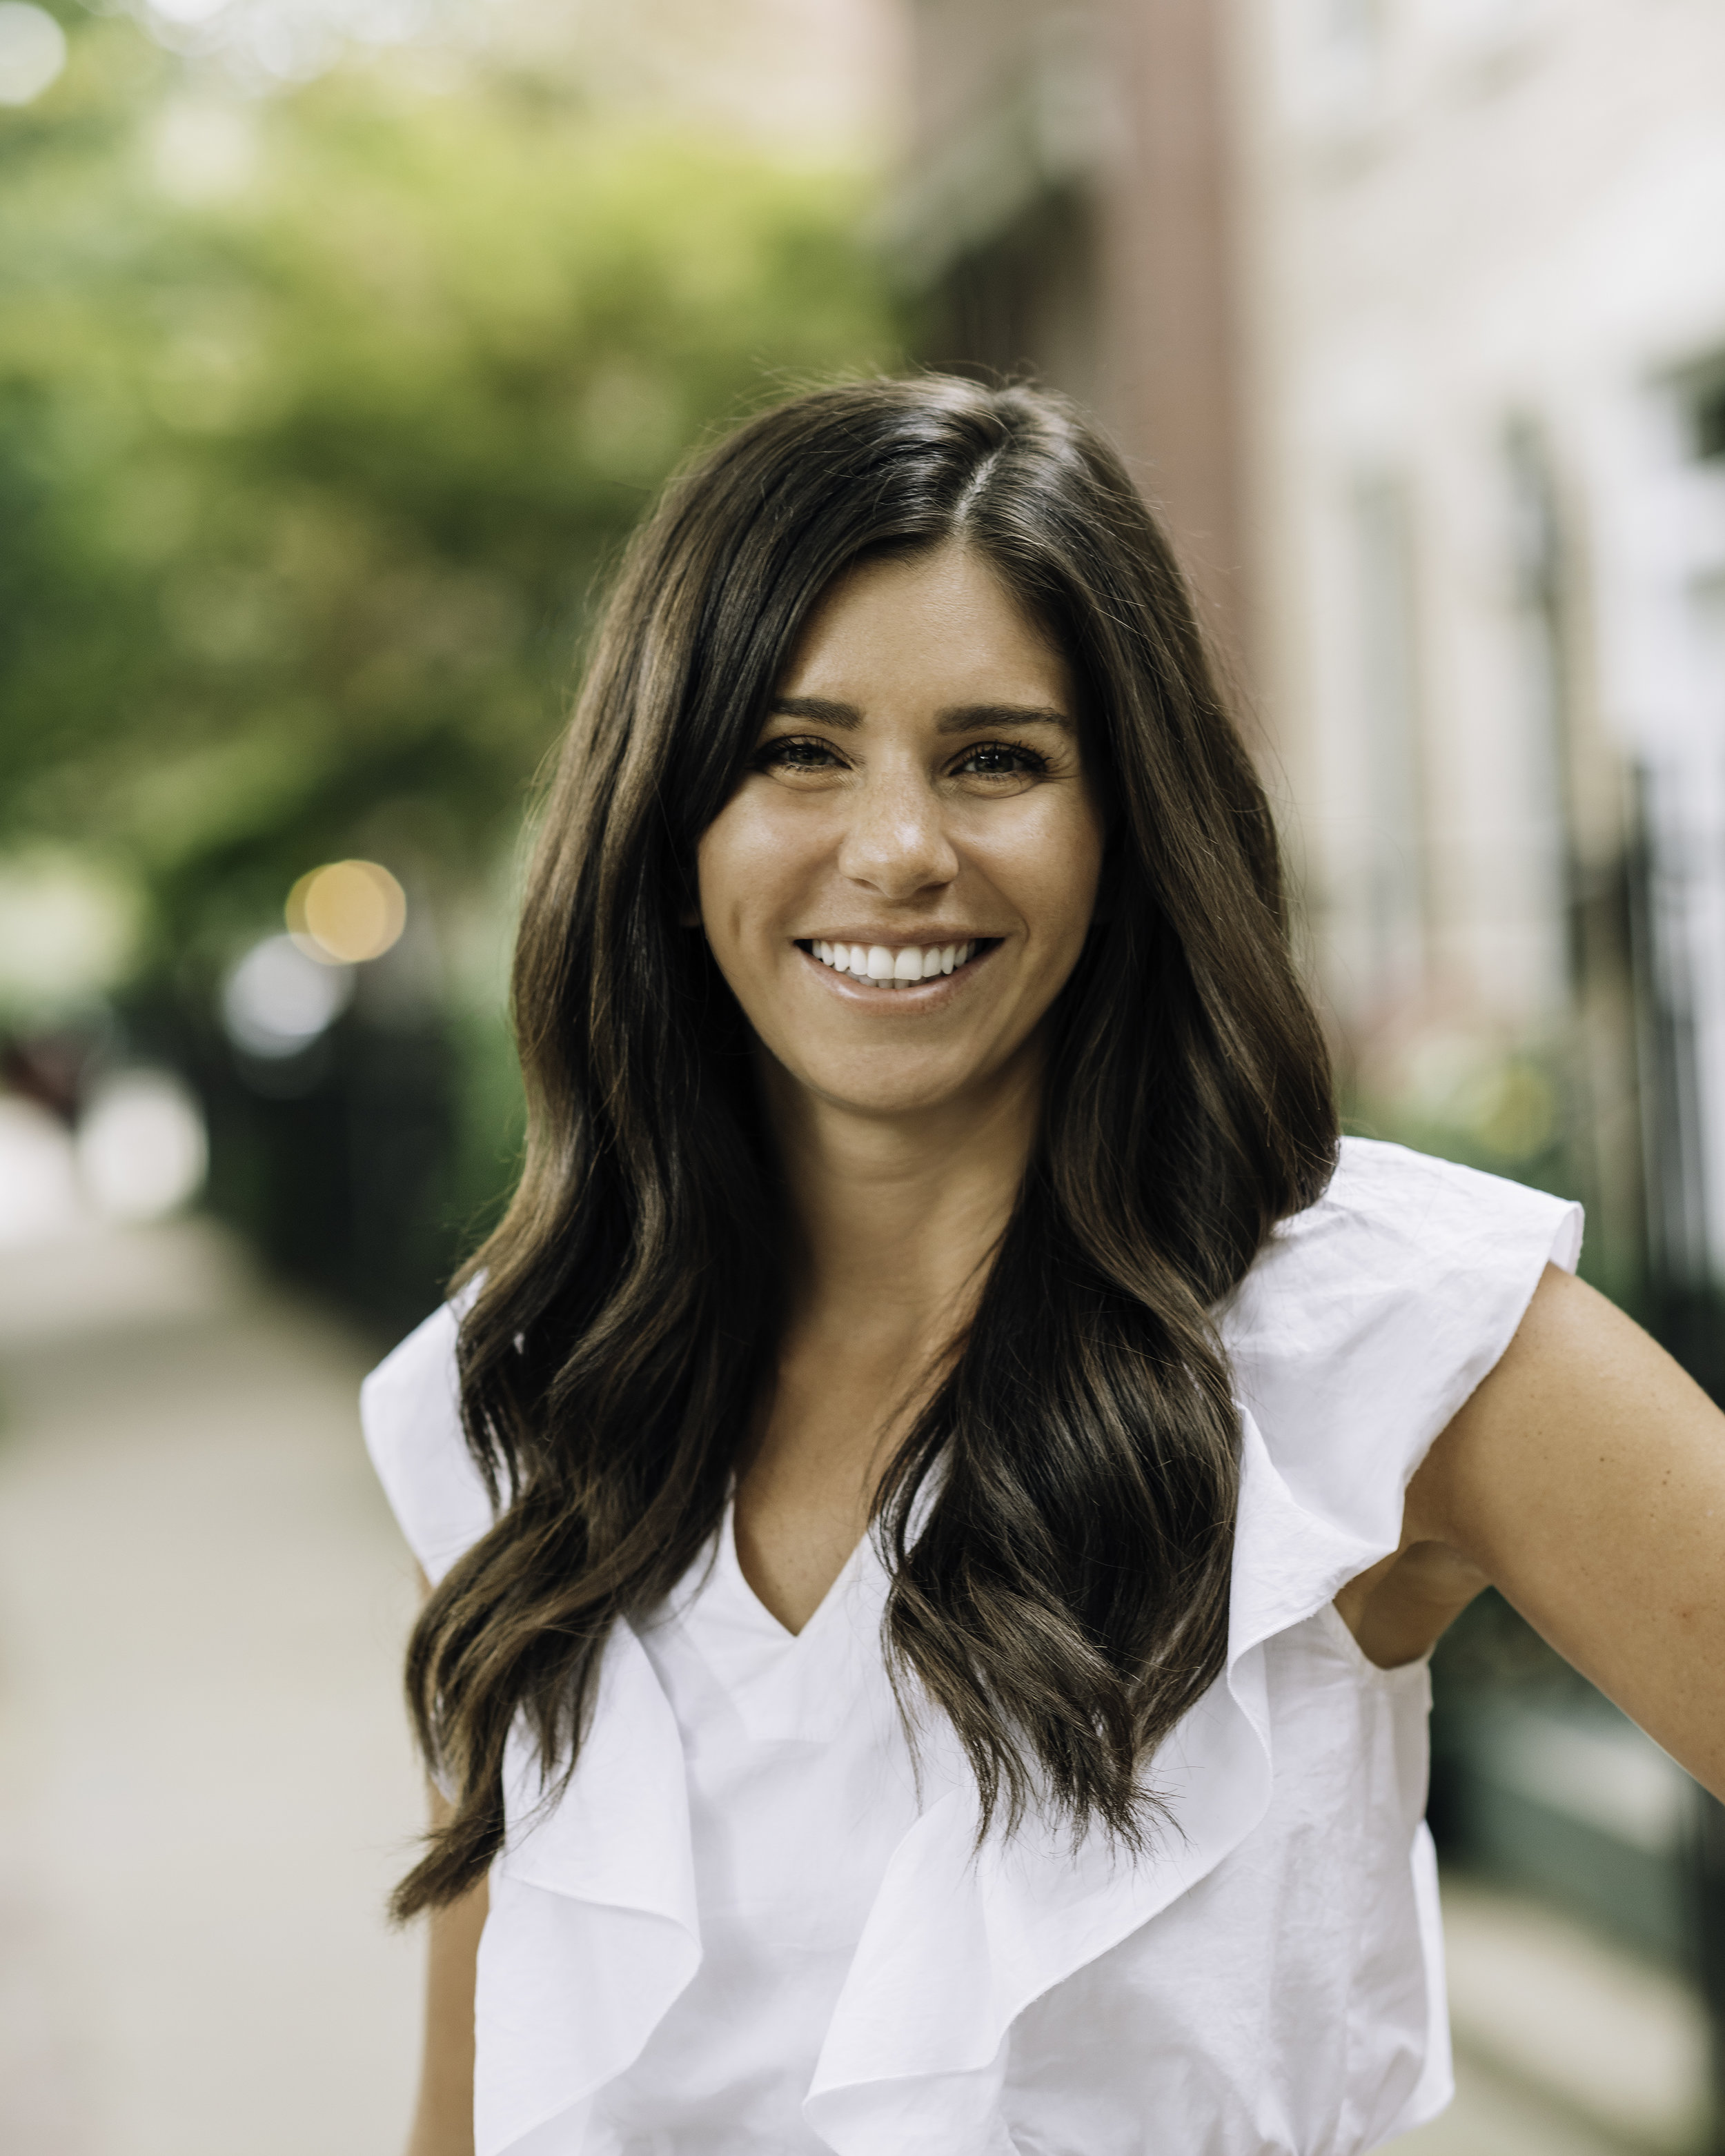 Paige Bovino - Paige Bovino joined Compass with the Hudson Parker Group as a partner in 2017. Prior to joining the Hudson Parker Group, Paige comes from a background in the hospitality industry. She has built a strong network of personal and professional relationships. Paige first realized her love and passion for the real estate industry almost six years ago when she invested in her first multifamily property. She has a proven track record in the purchase, sale, and management of investment properties. Paige is passionate about interior design and the residential side of the industry as well, and has helped many clients with buying and selling their single family homes and condominiums. She is knowledgeable about every step of the process and will walk her clients through the process from start to finish.  Her straightforward and honest approach is what makes her clients feel comfortable, confident, and happy with their transaction.